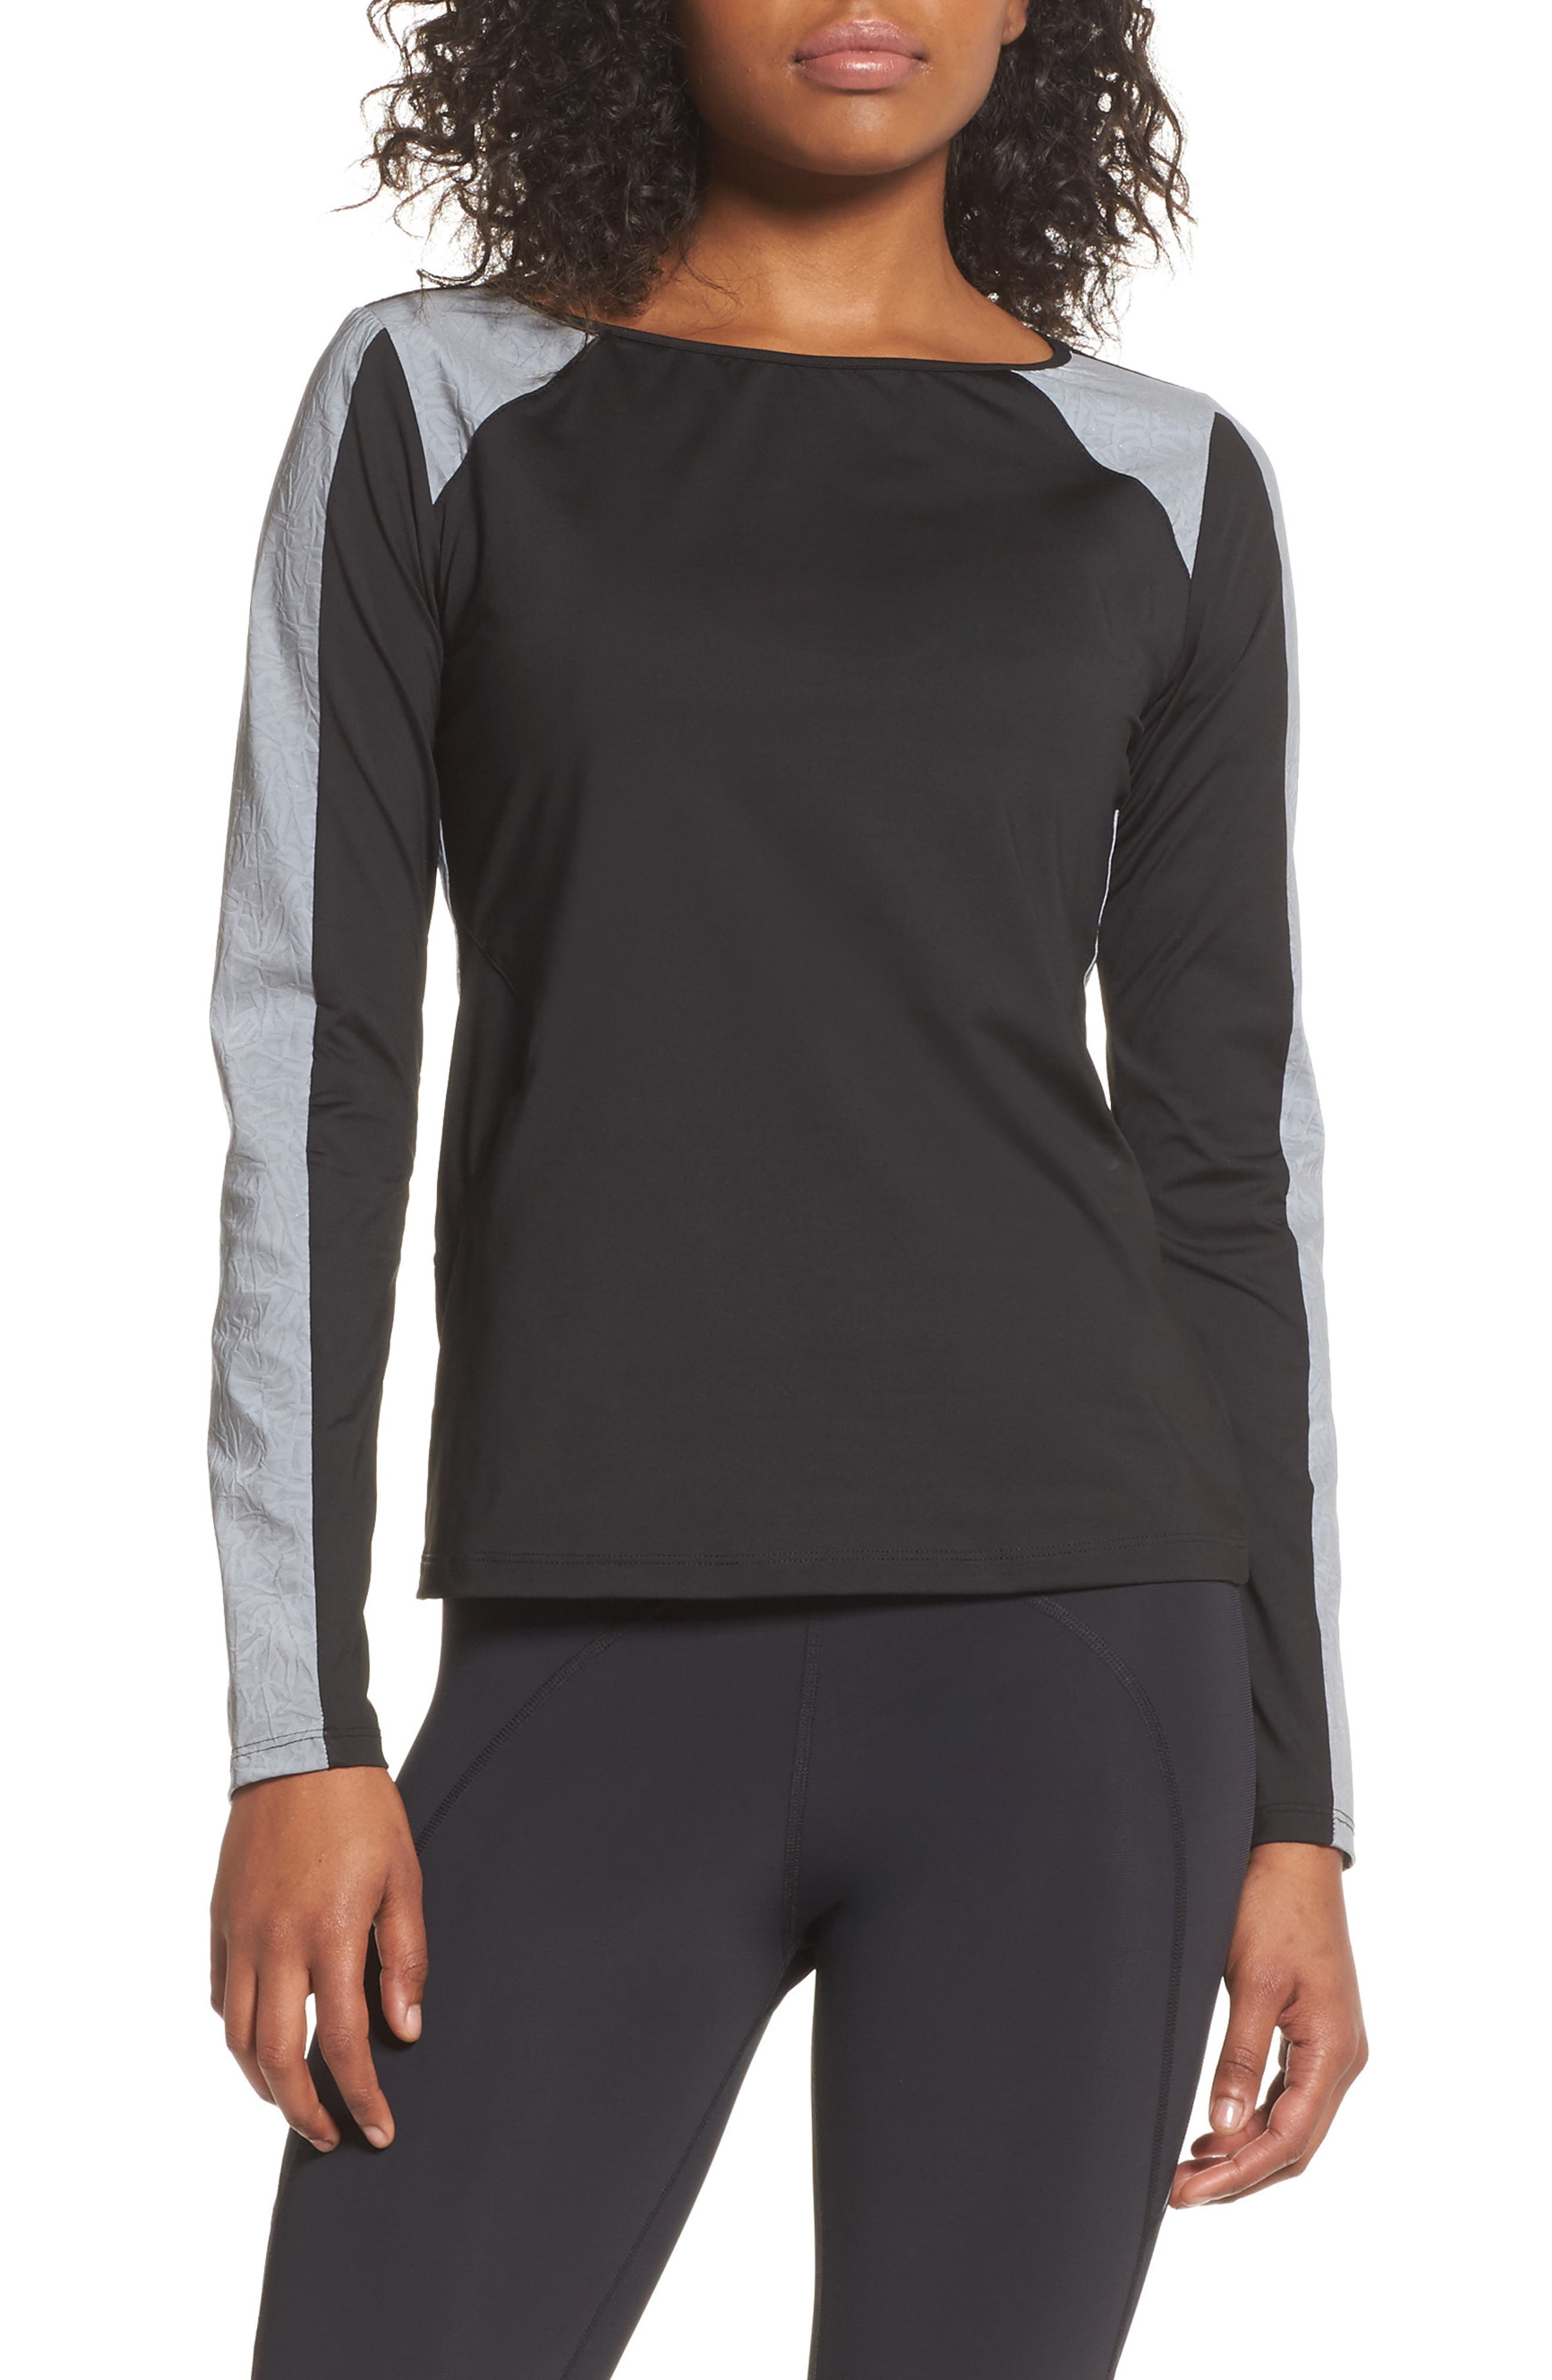 BoomBoom Athletica Reflective Body-Con Long Sleeve Tee,                             Main thumbnail 1, color,                             005